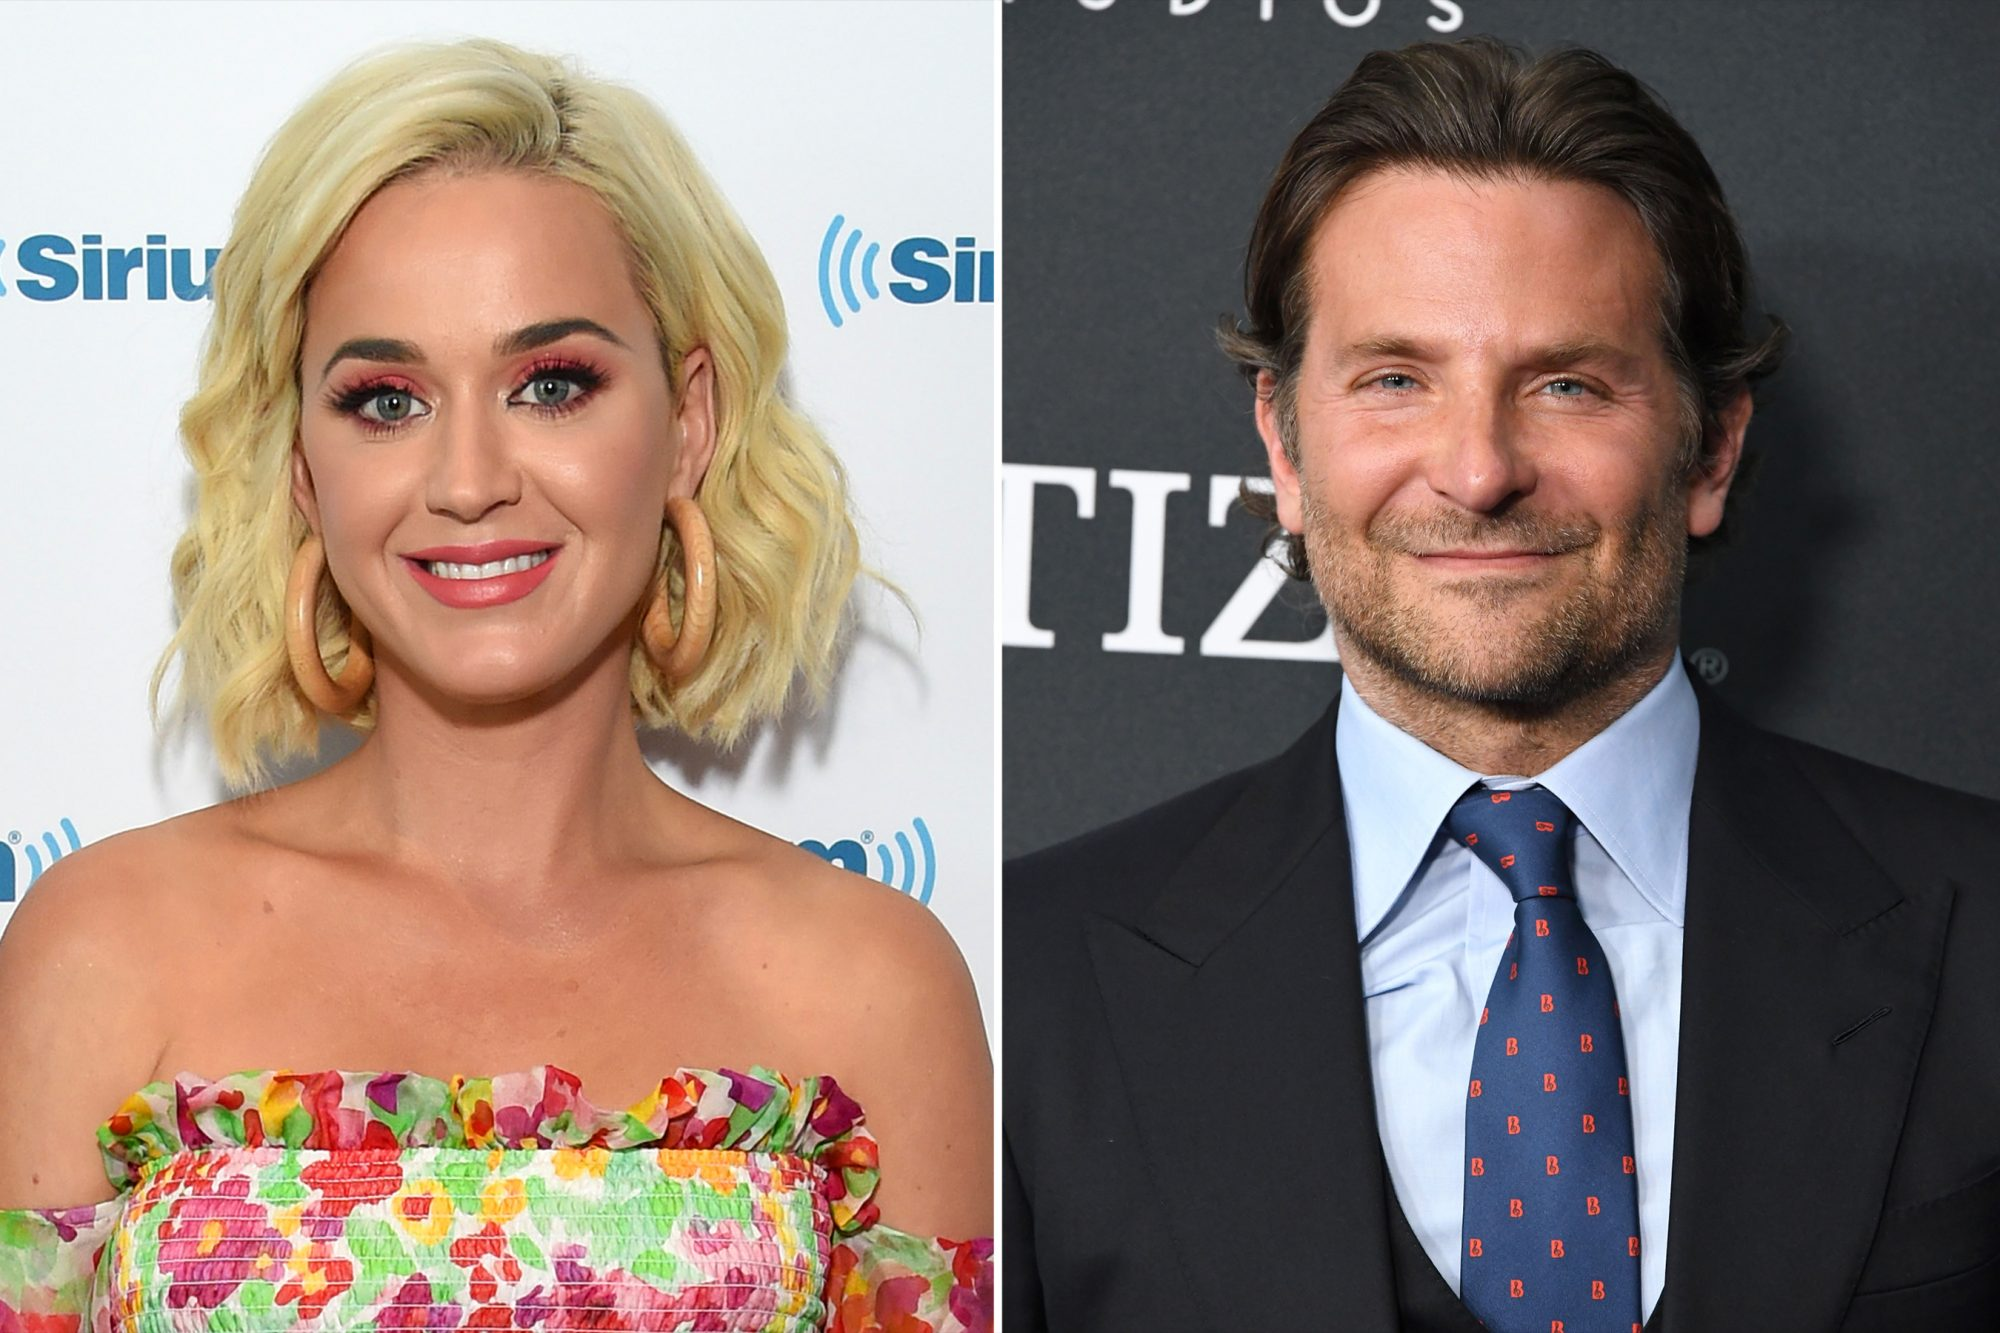 Katy Perry and Bradley Cooper